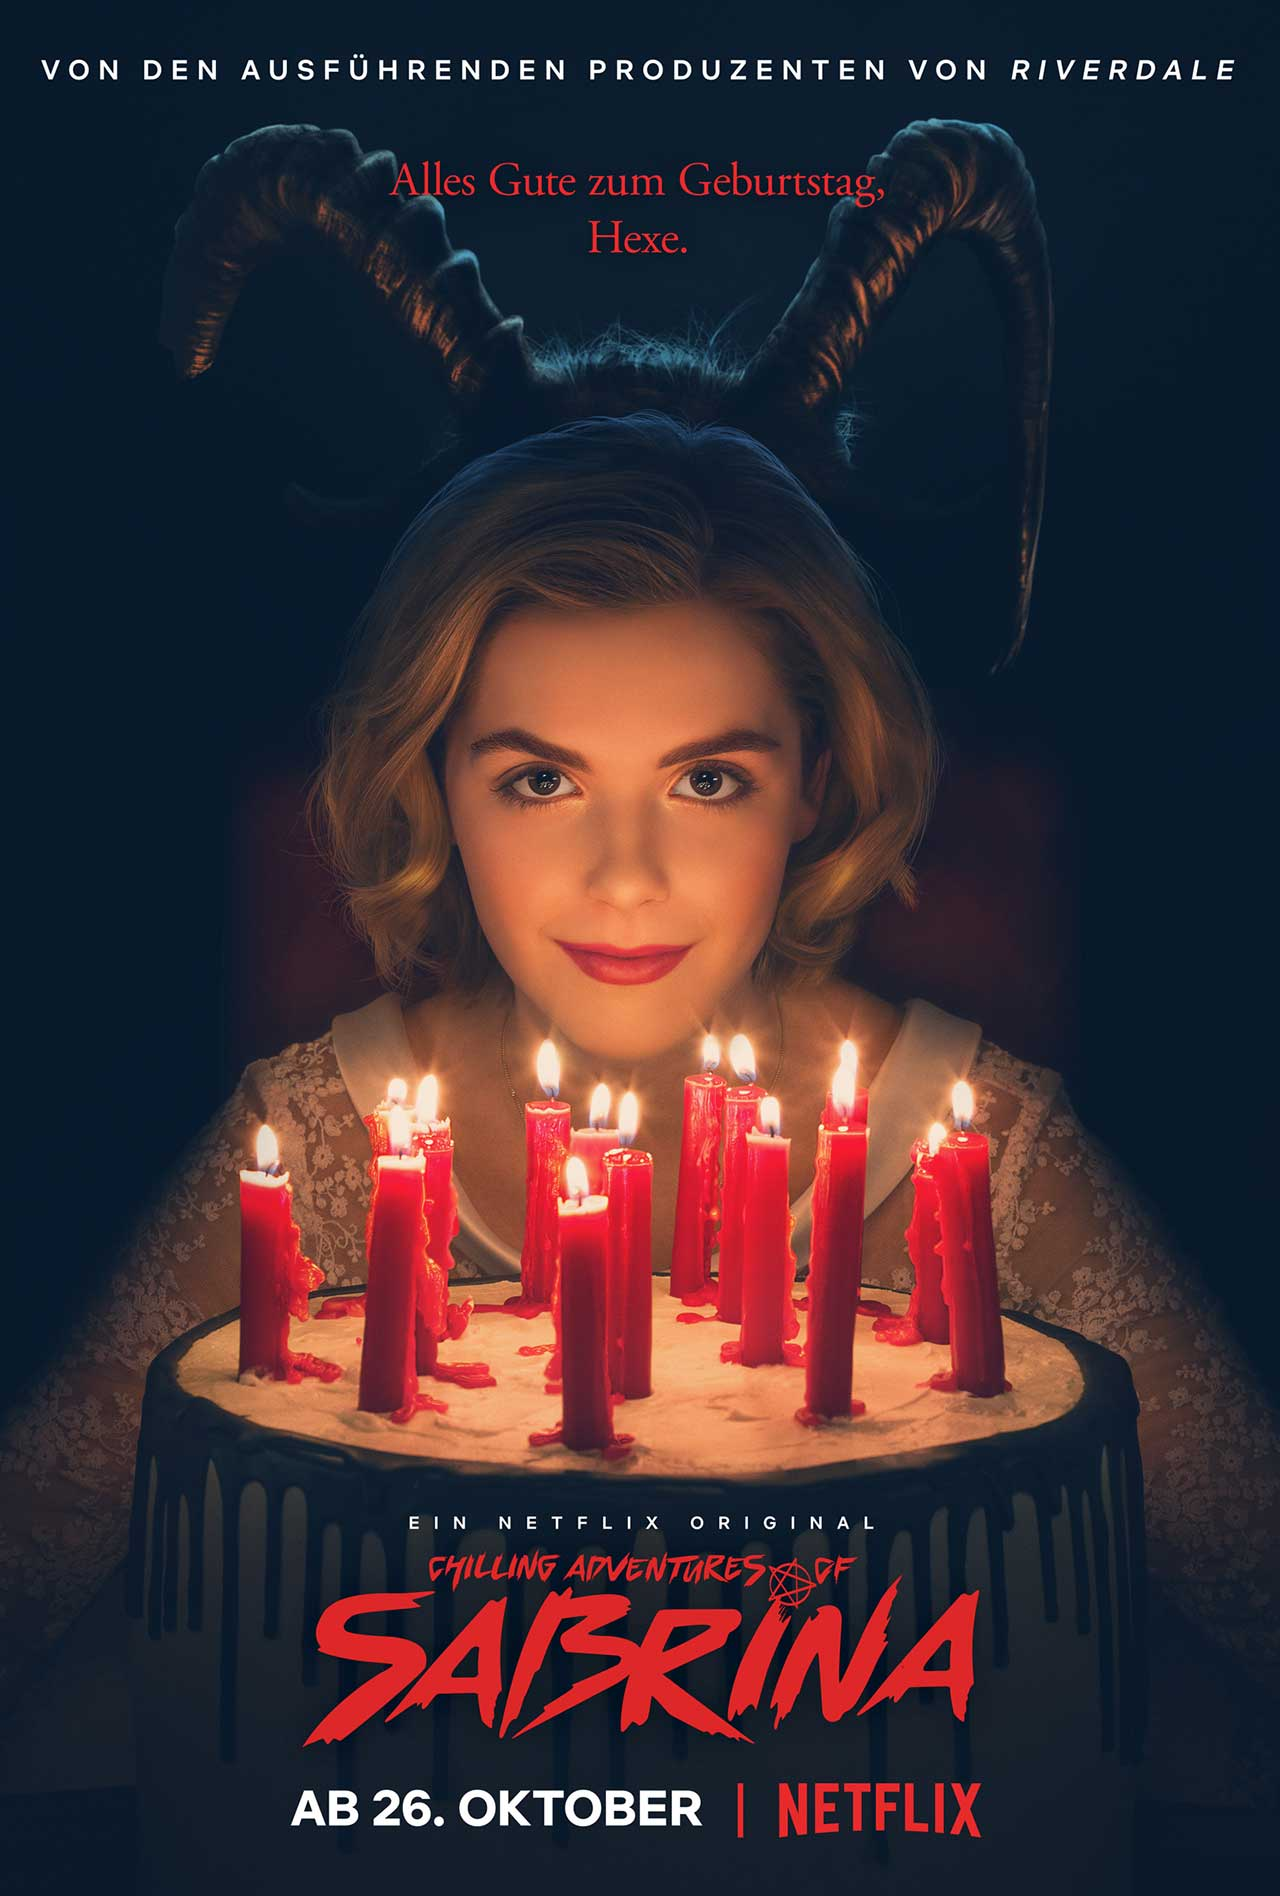 Chilling-Adventures-of-Sabrina-key Chilling Adventures of Sabrina: Erster Teaser zum Hexen-Reboot